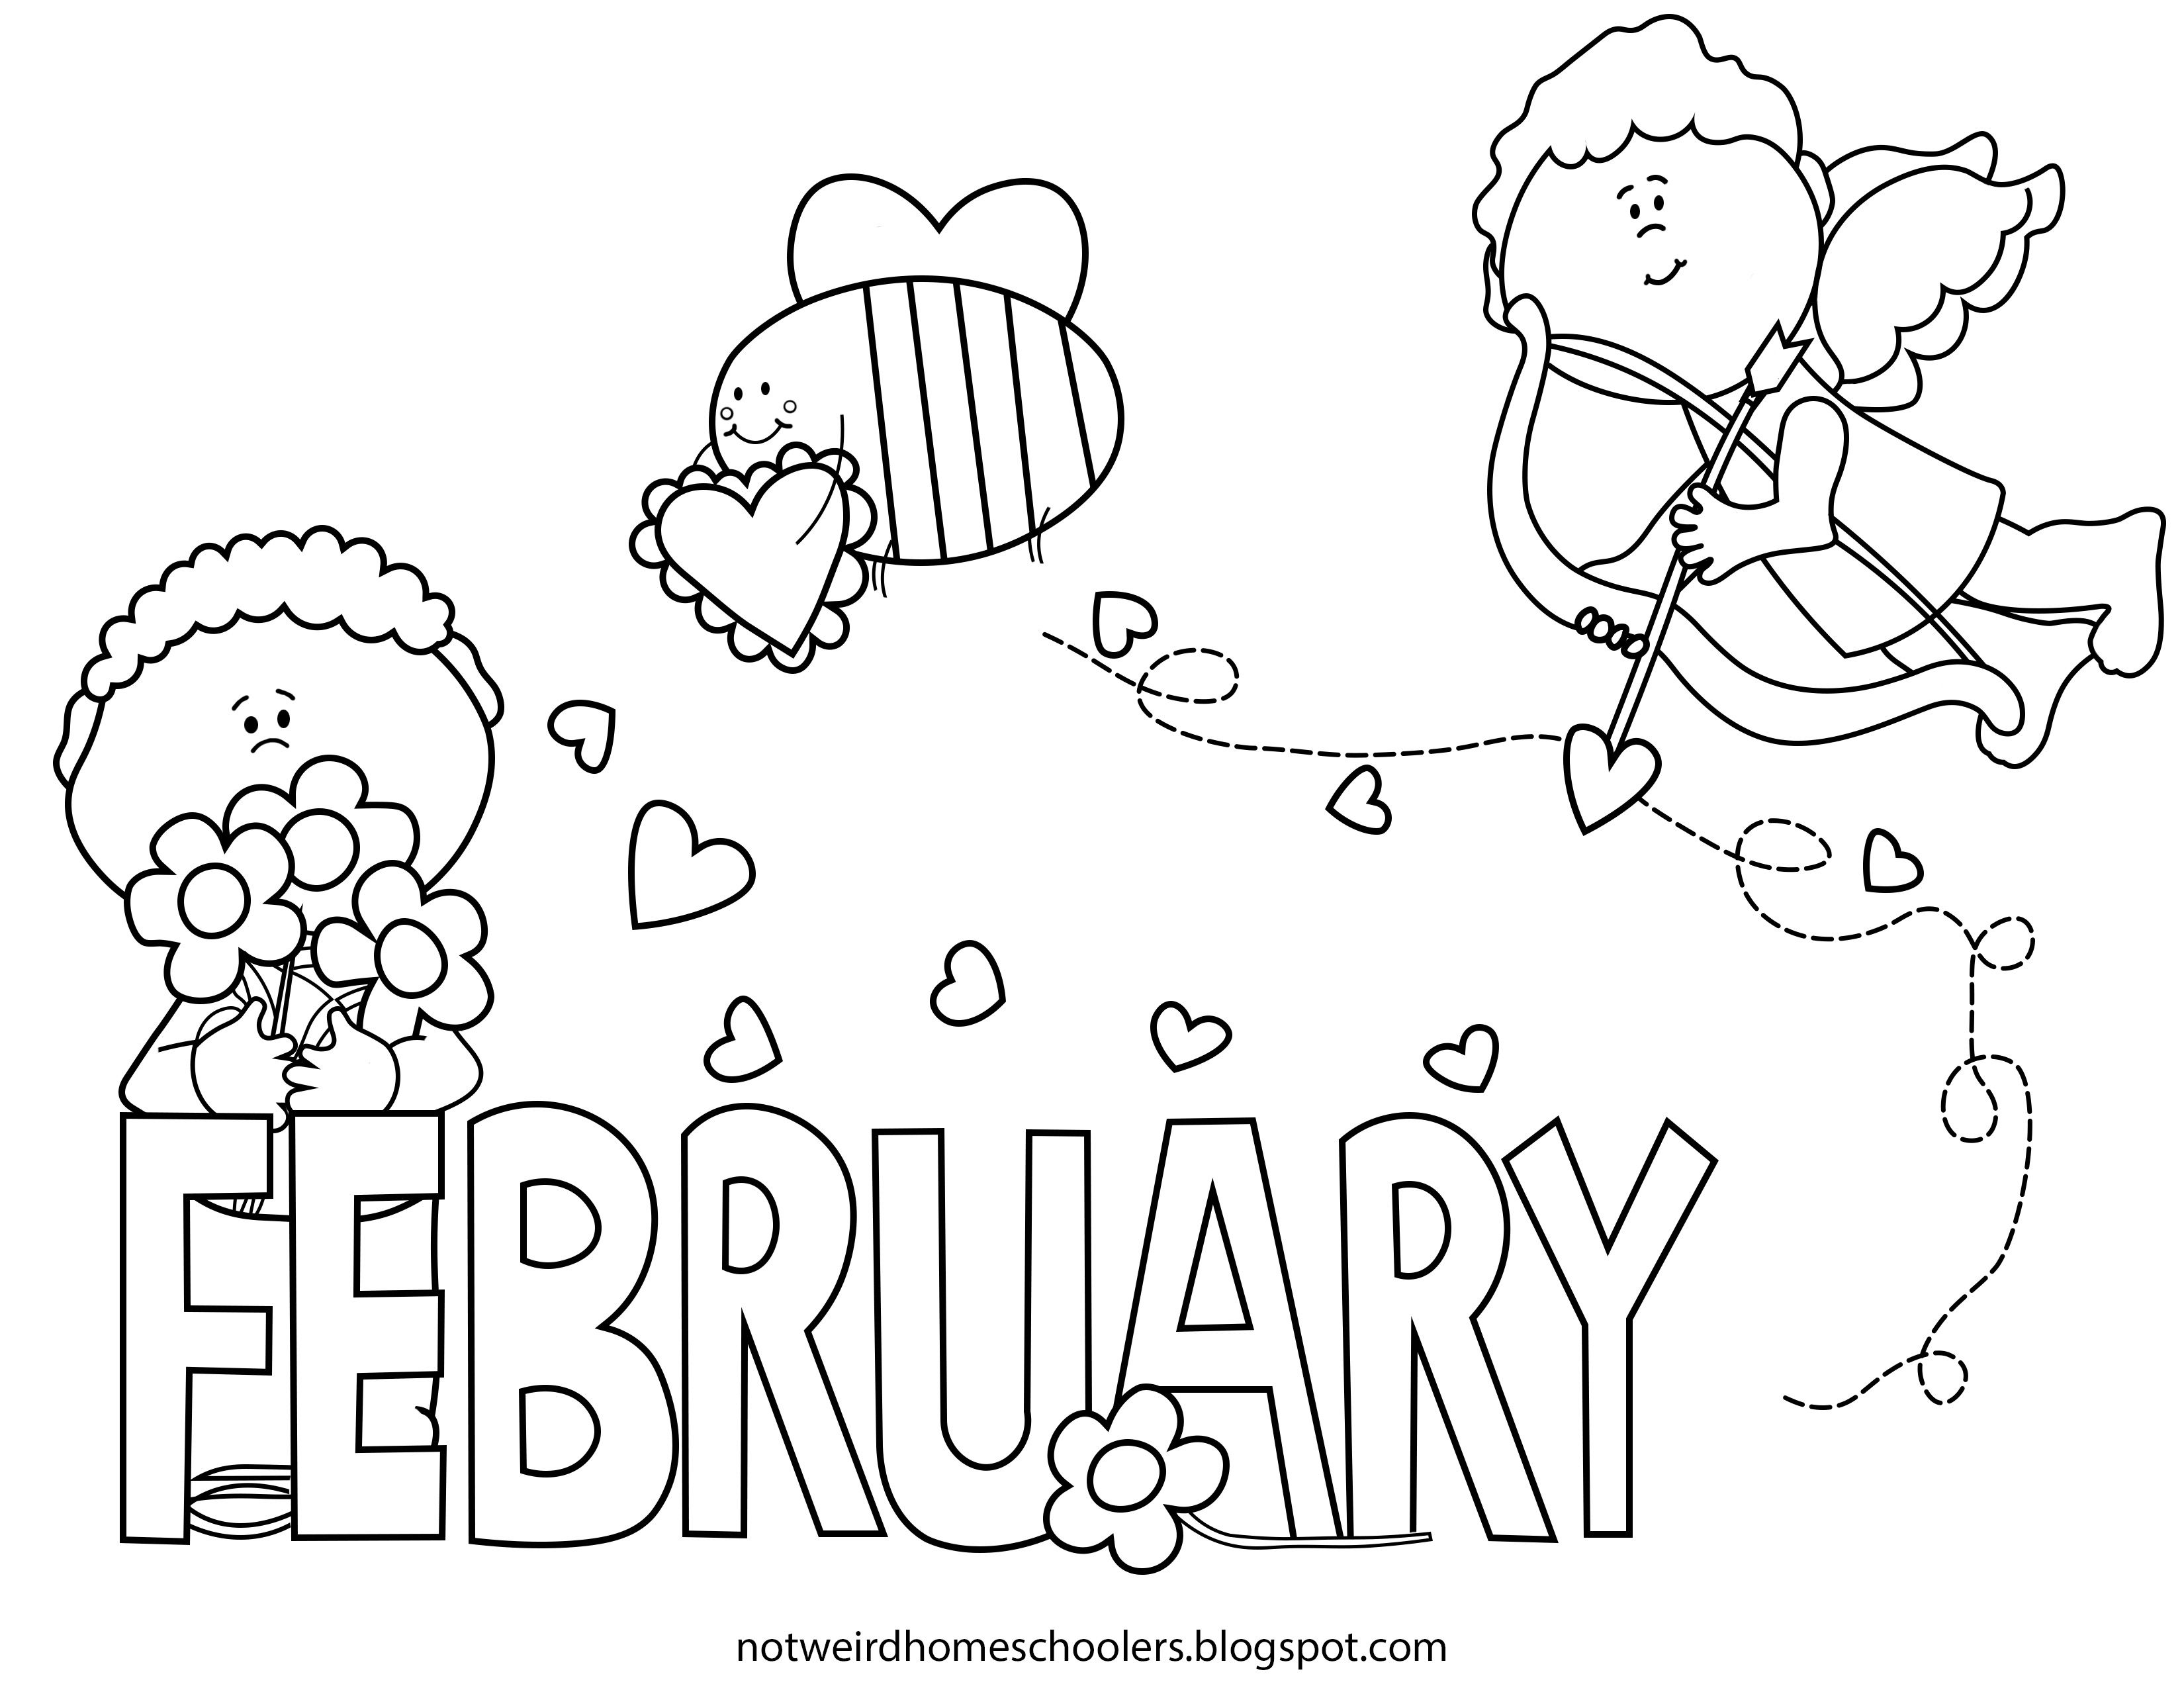 February Valentines Day Coloring Page Valentines Day Coloring Page Valentine Coloring Pages Printable Coloring Pages